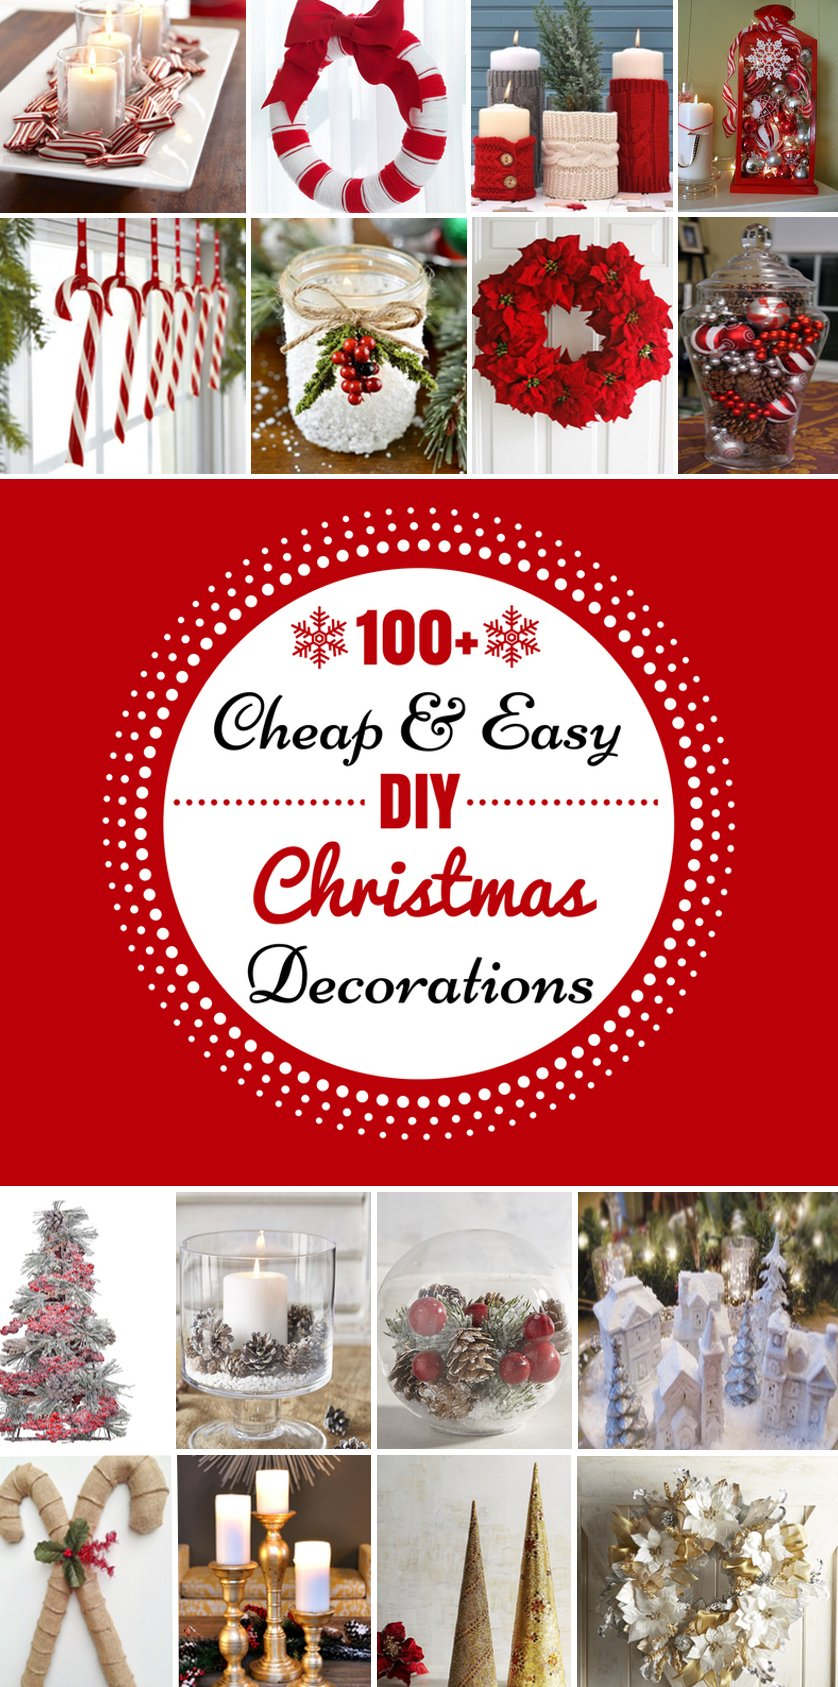 100 cheap easy diy christmas decorations prudent penny pincher. Black Bedroom Furniture Sets. Home Design Ideas